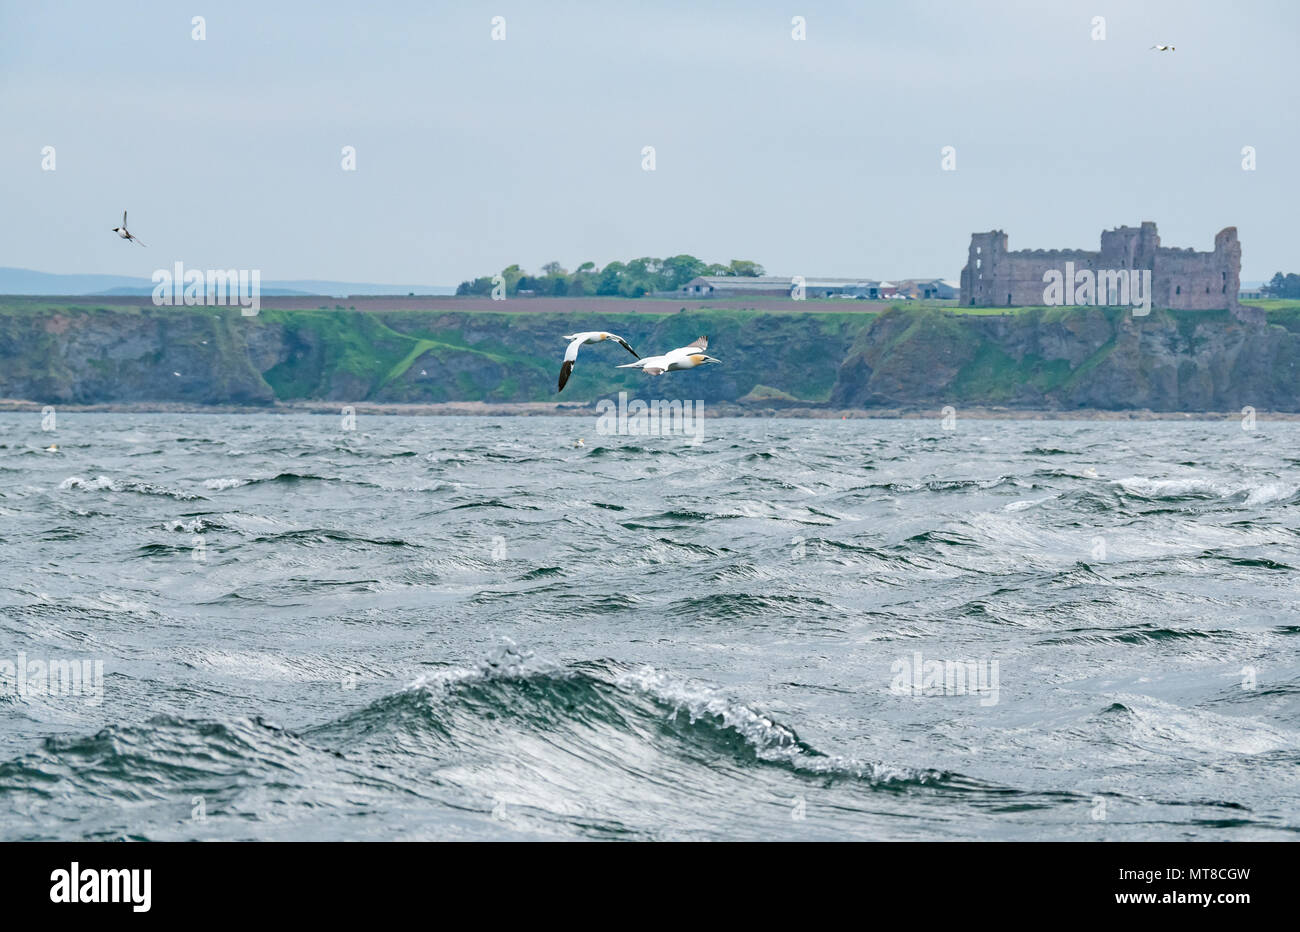 Northern gannets, Morus bassanus, flying over sea with Tantallon Castle in distance, North Berwick, Scotland, UK - Stock Image